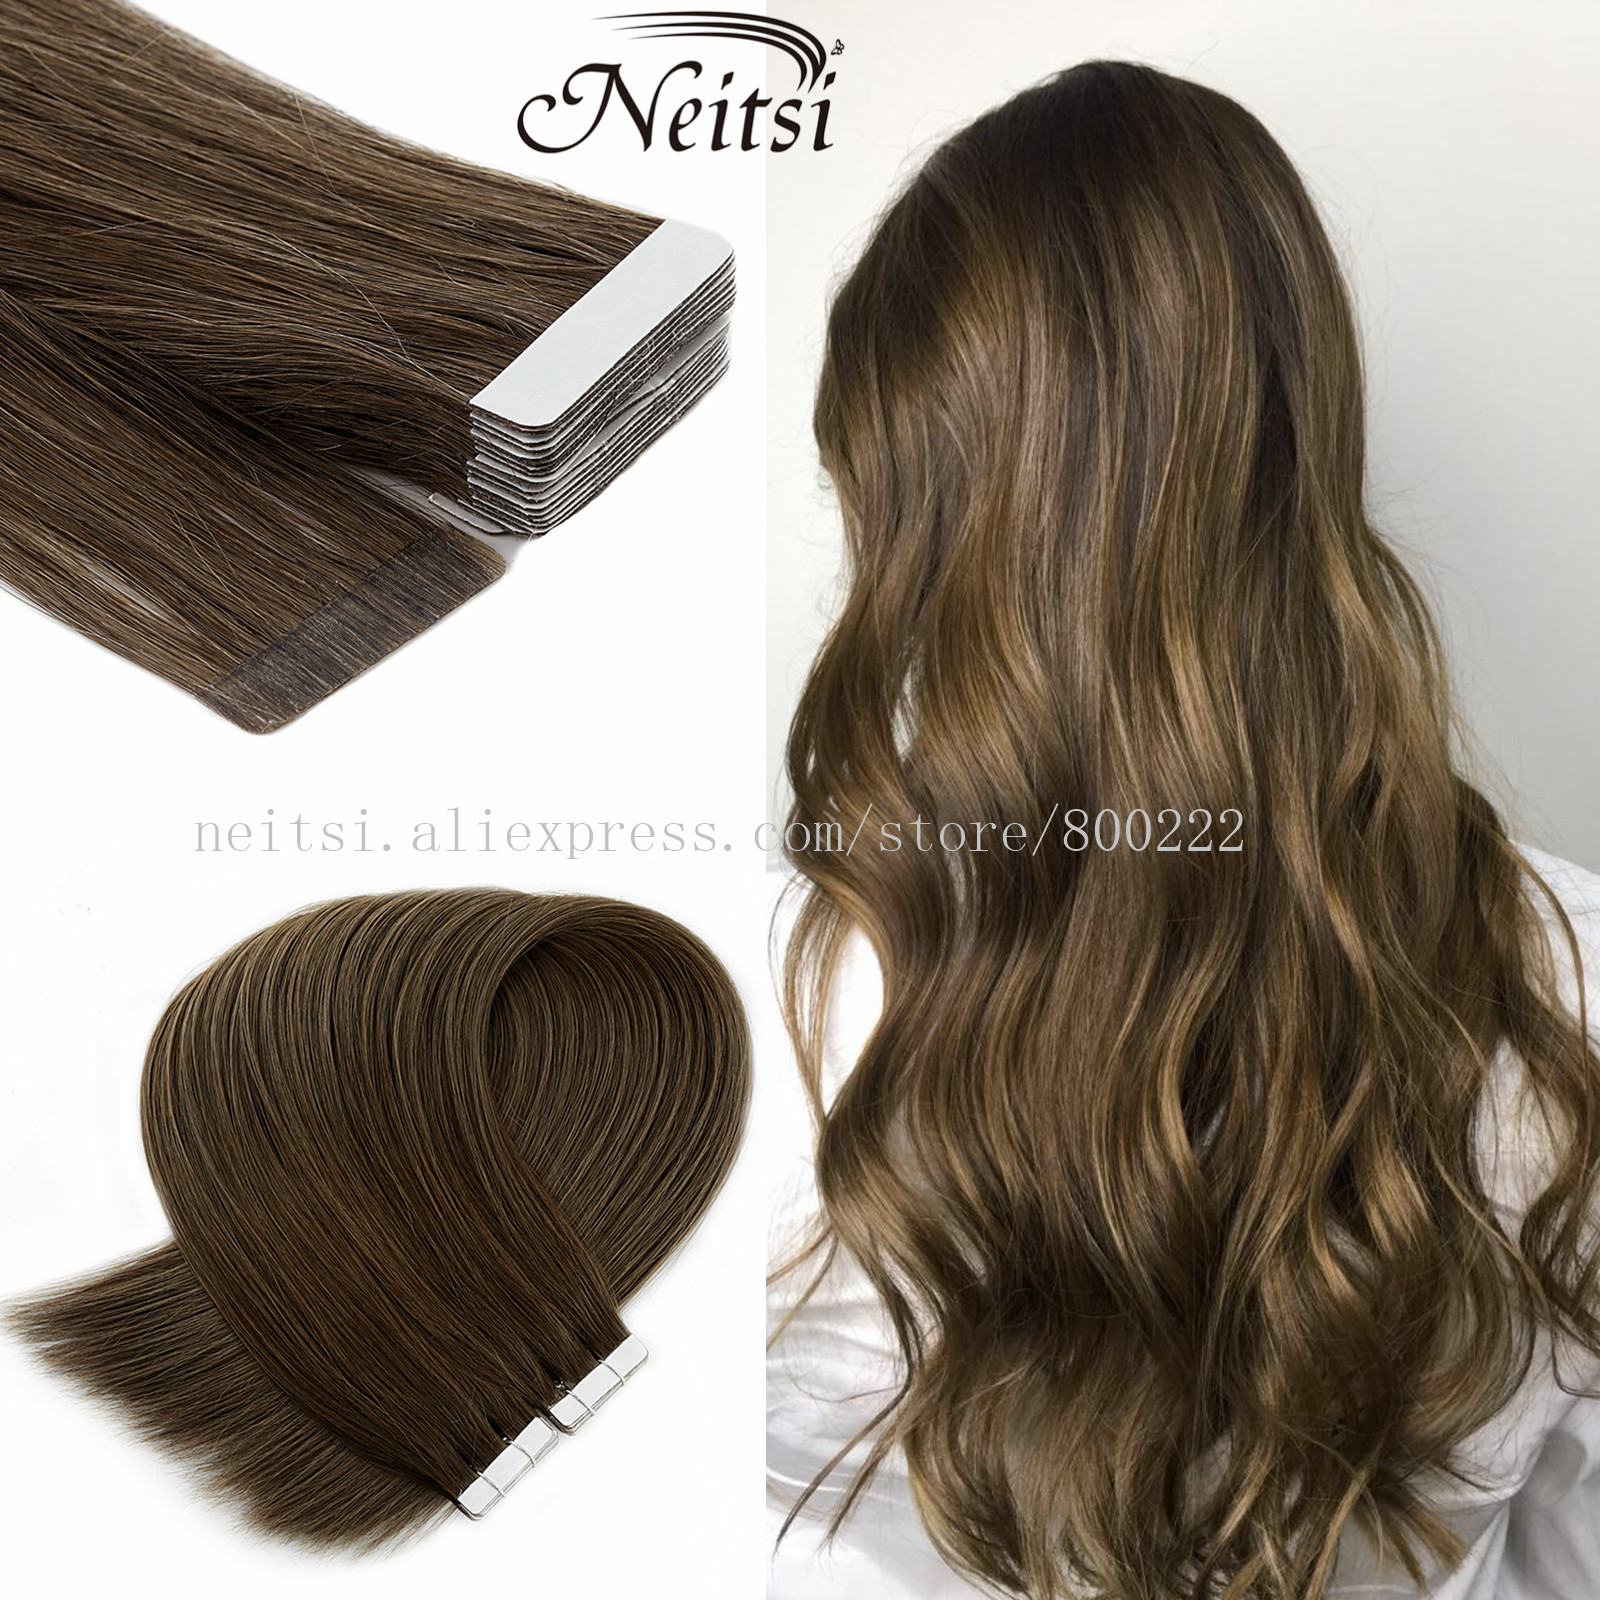 Neitsi 22 Inches 2.5g/pc Machine Remy Tape In Human Hair Extensions Seamless Skin Weft Hair Straight 100% Human Hair 20PCS